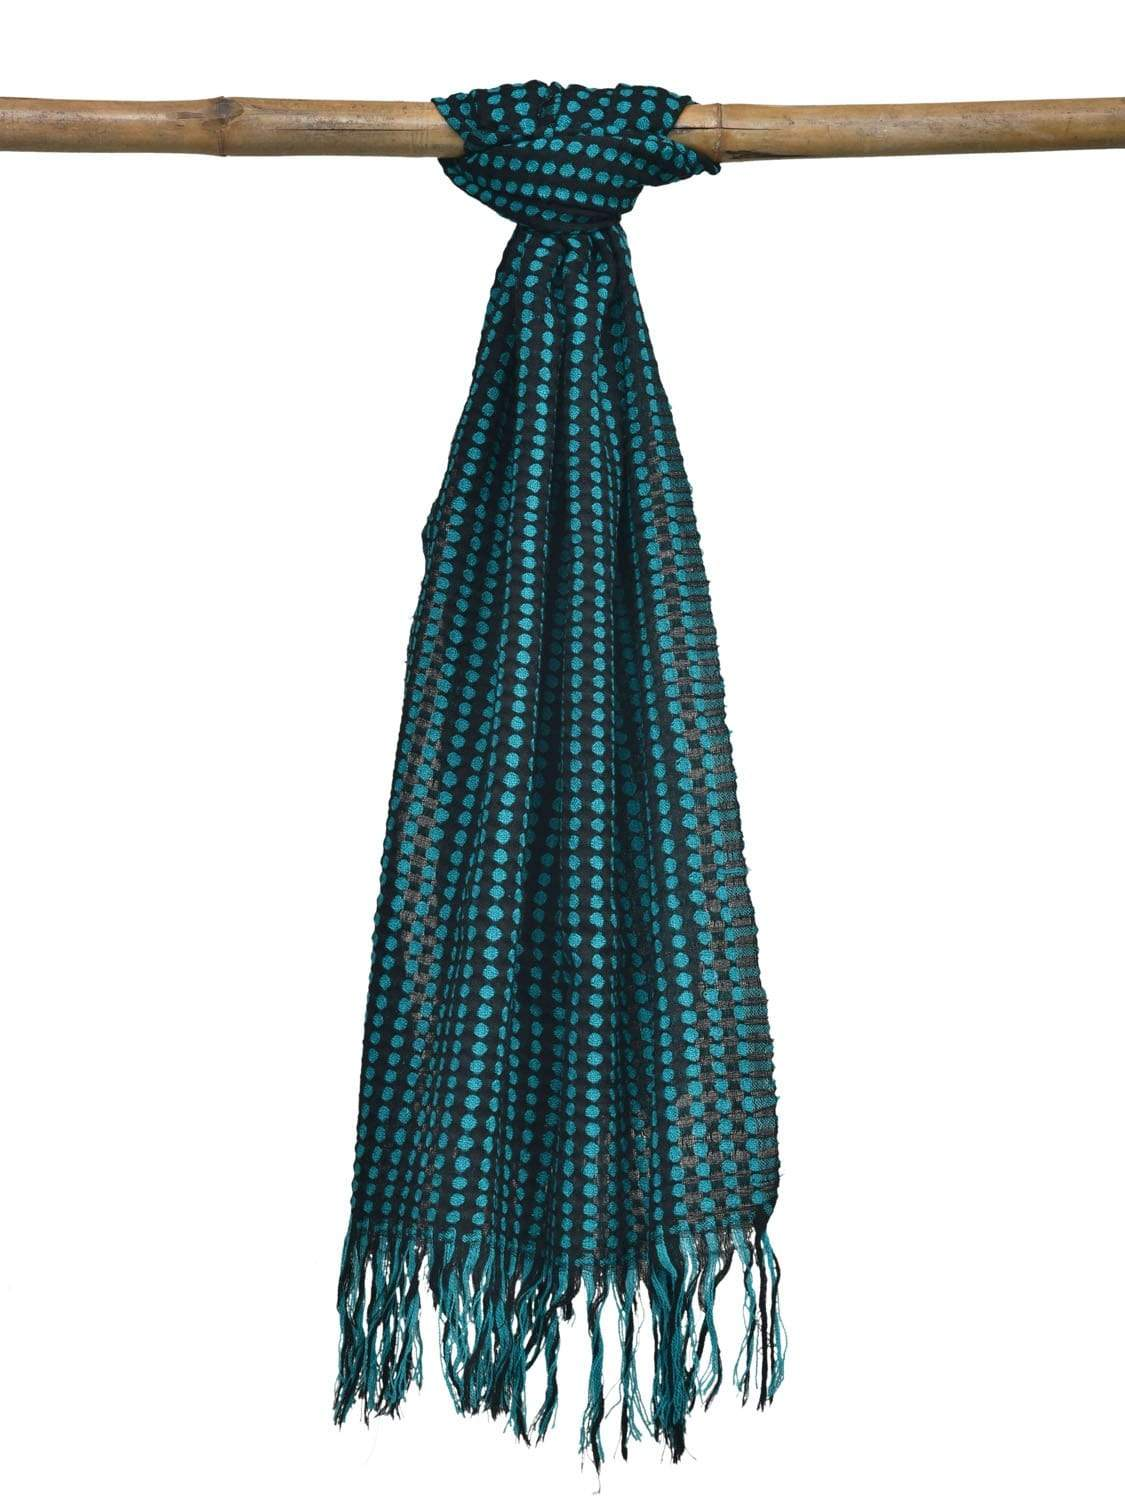 Blue and Black Hand Woven Woolen Shawl Stole with Dots Design ds1861